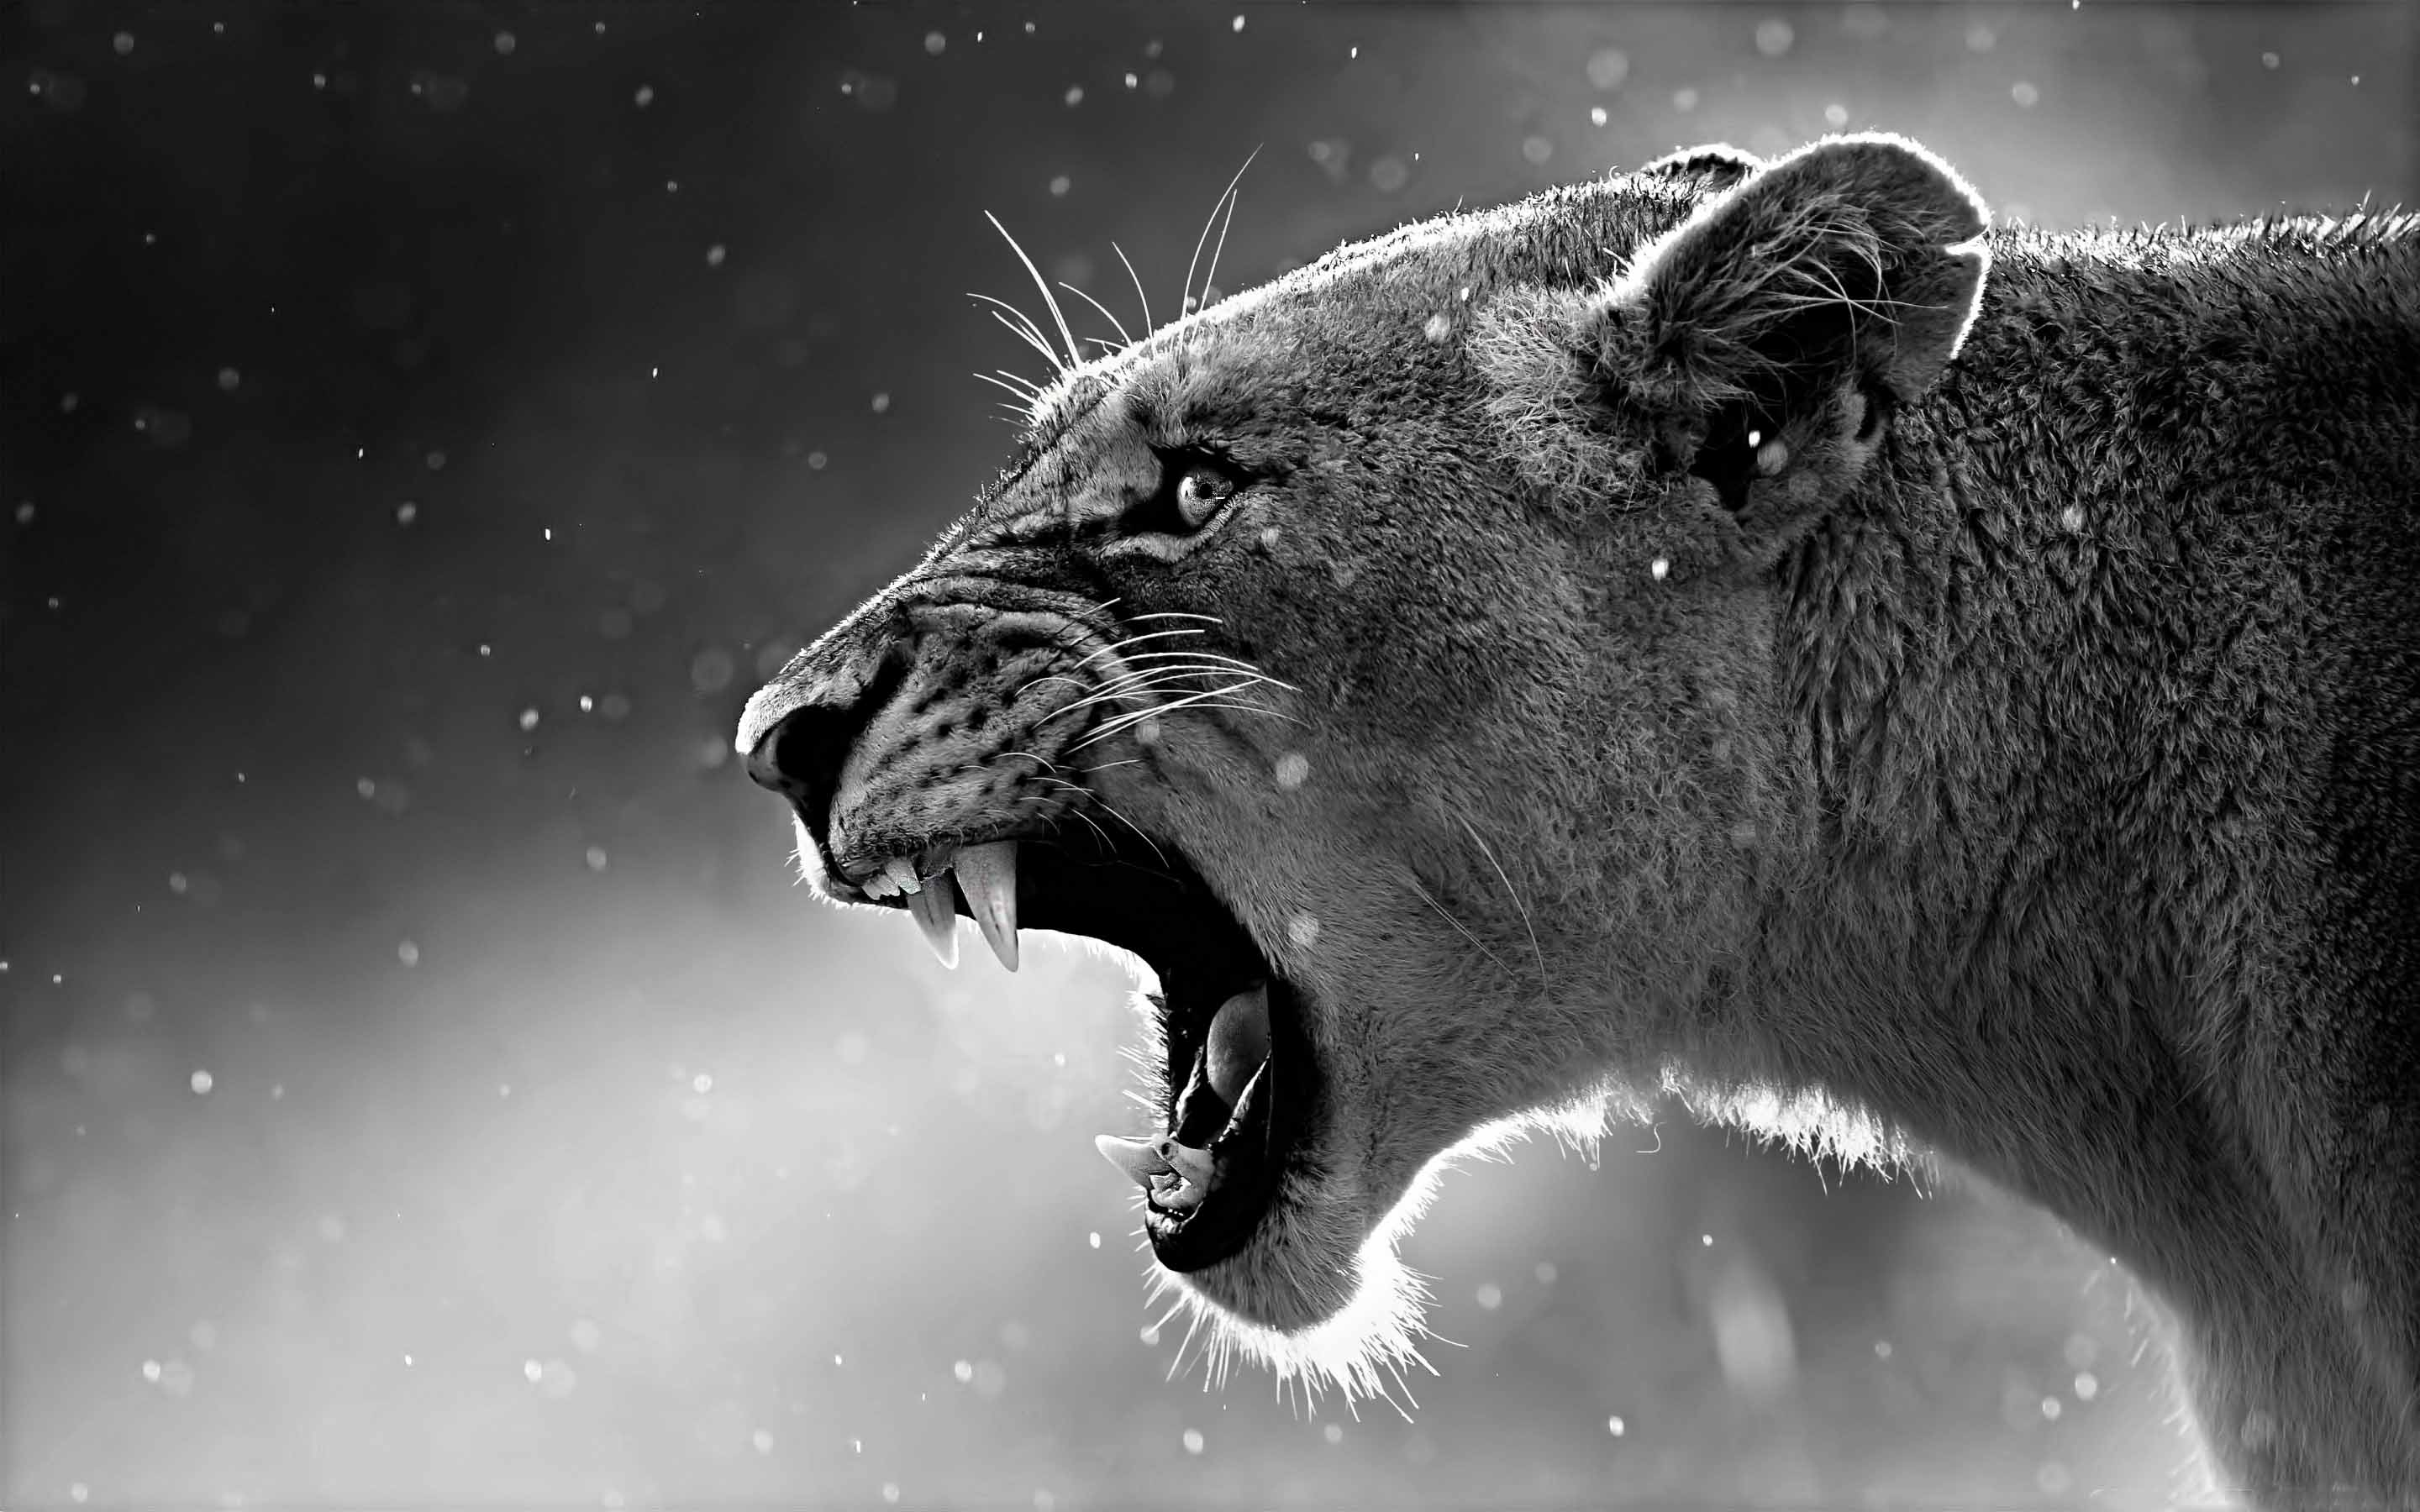 the lioness mac wallpaper download | free mac wallpapers download